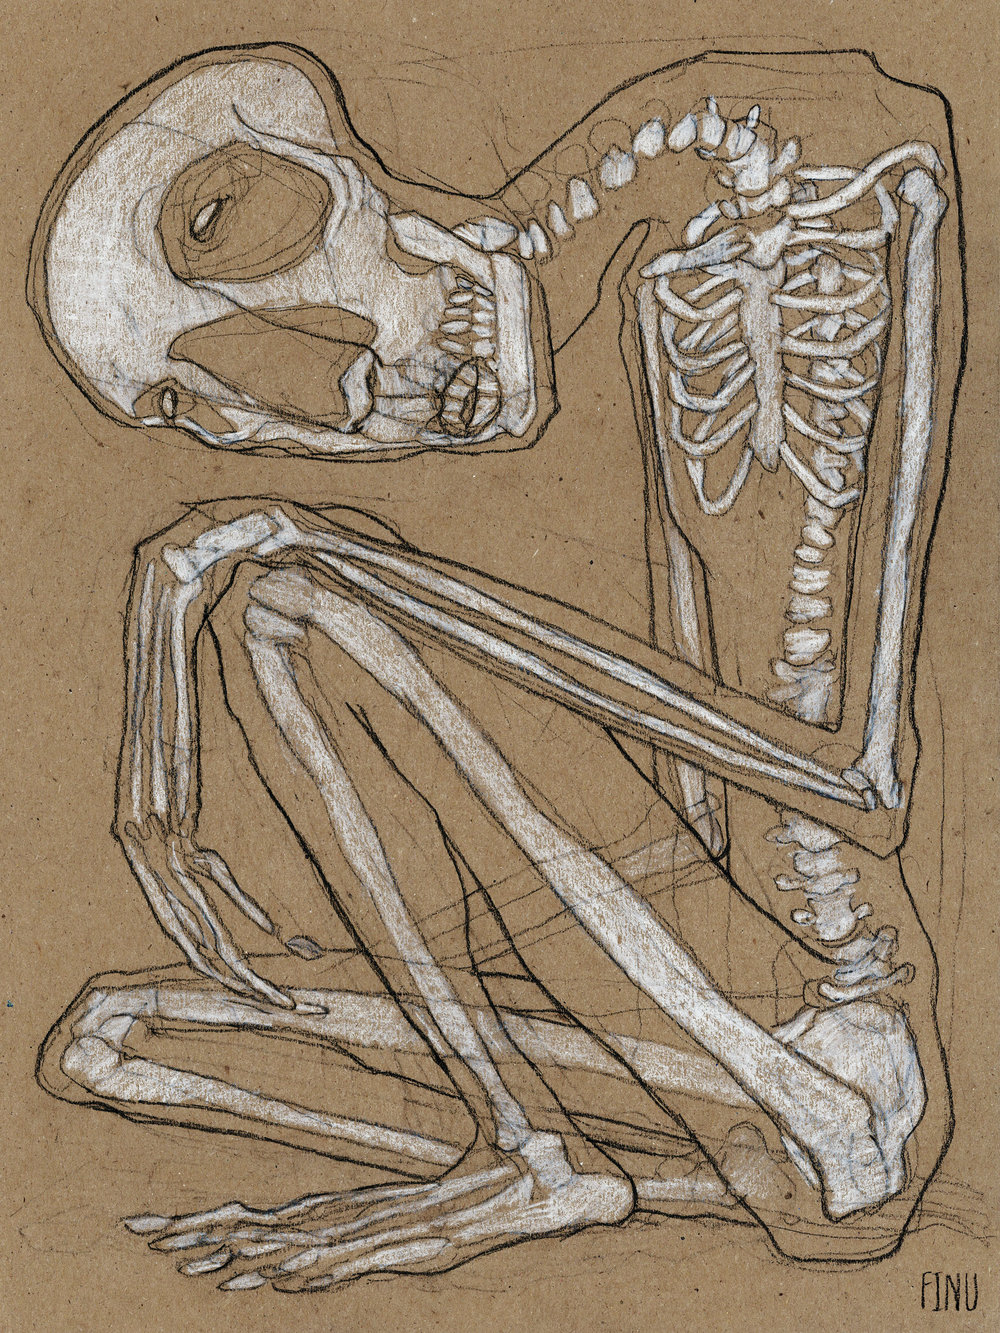 "BONES  Charcoal and pastel on kraft paper, 9 x 12"", 2017"